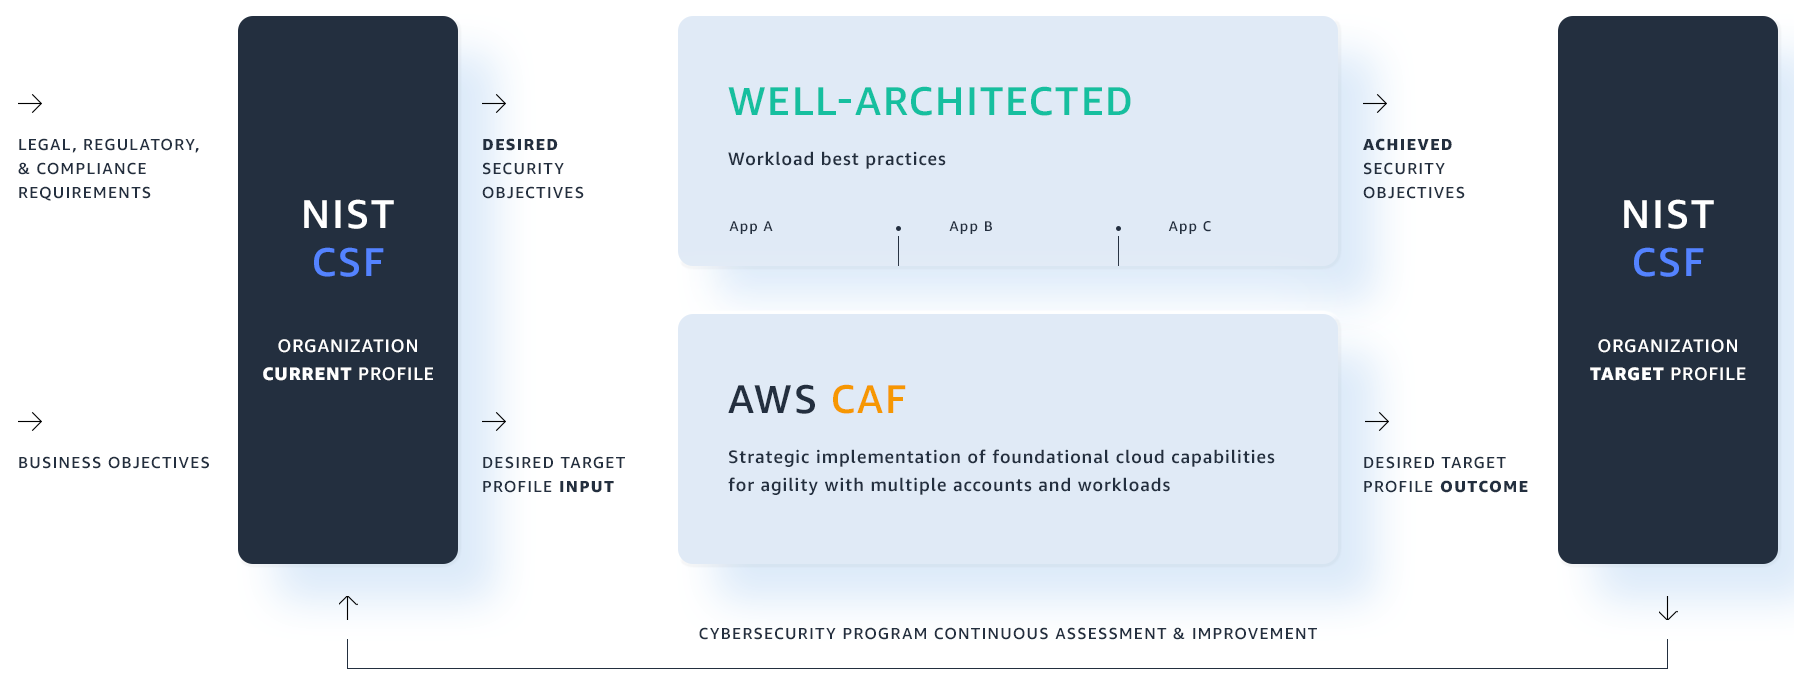 Optimizing cloud governance upon AWS: Integrating the NIST Cybersecurity Framework, AWS Cloud Adoption Framework, and AWS Well-Architected